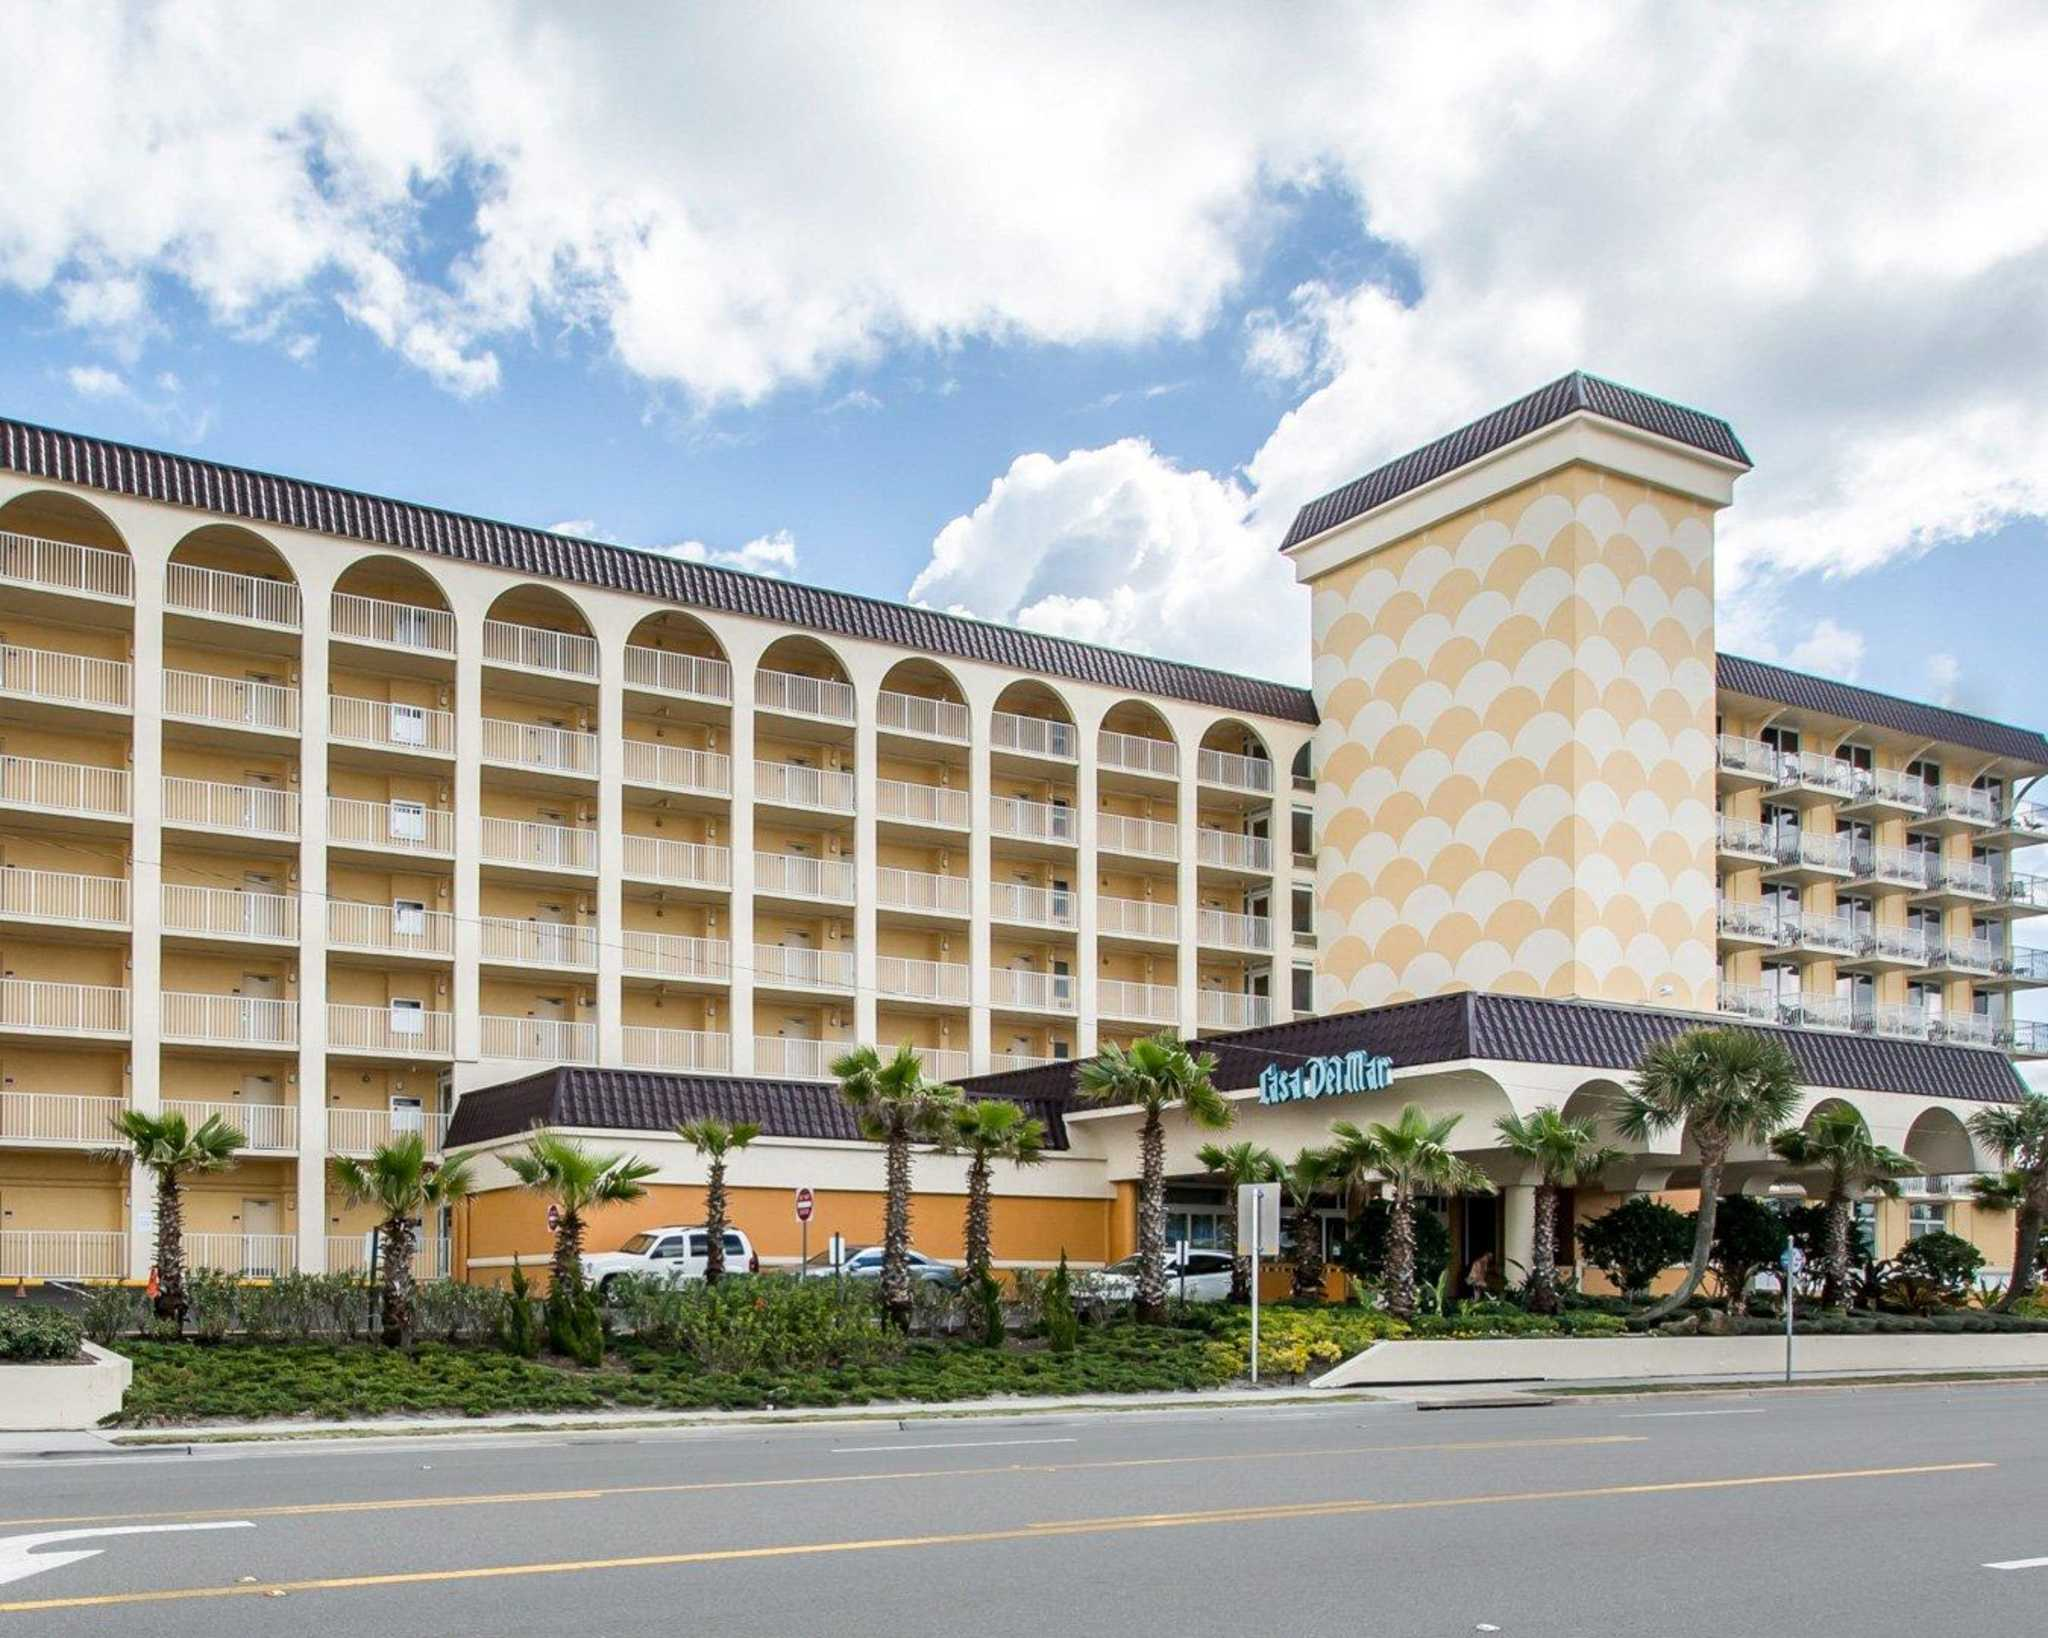 Ormond Beach Motels And Hotels